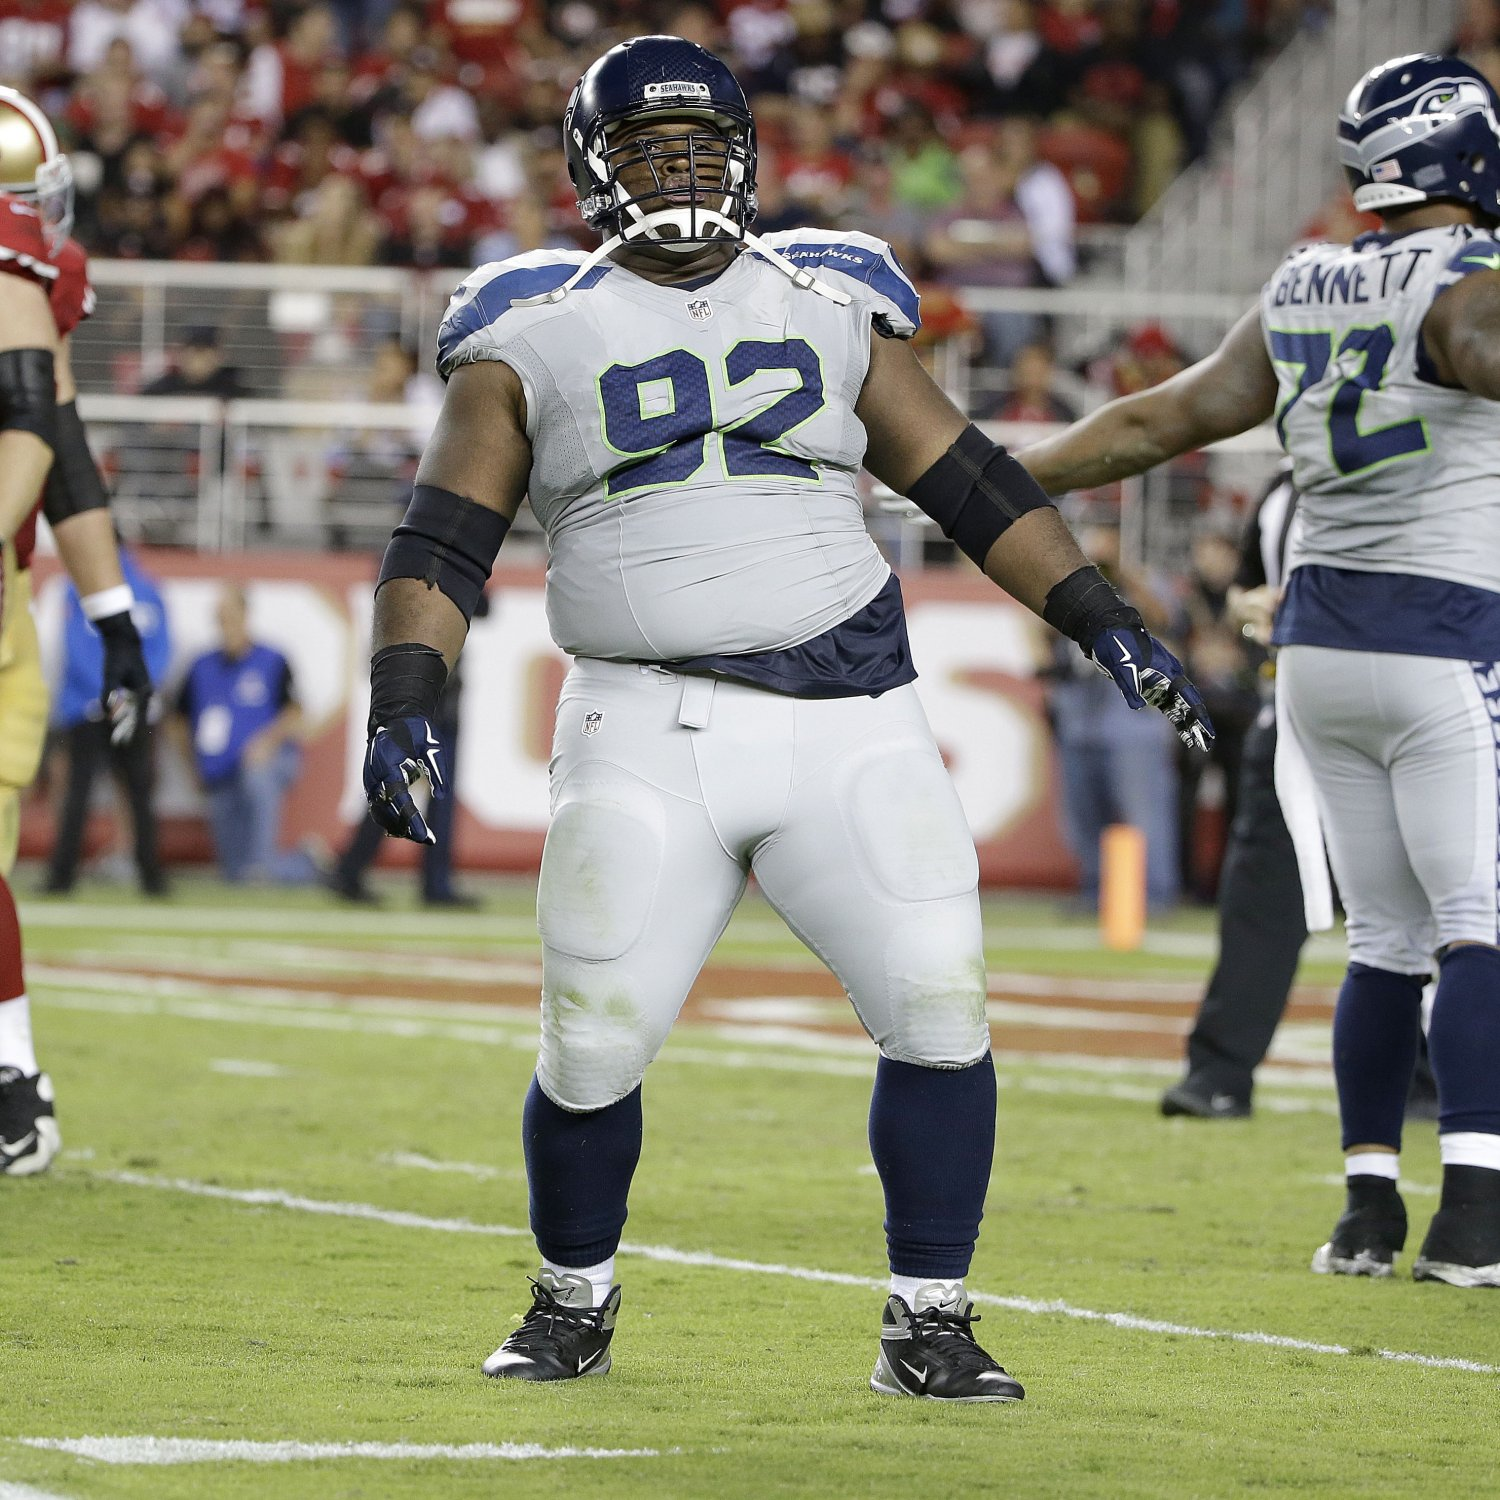 San Diego Chargers Defensive Line: Brandon Mebane Says Chargers Defense Has More Talent Than